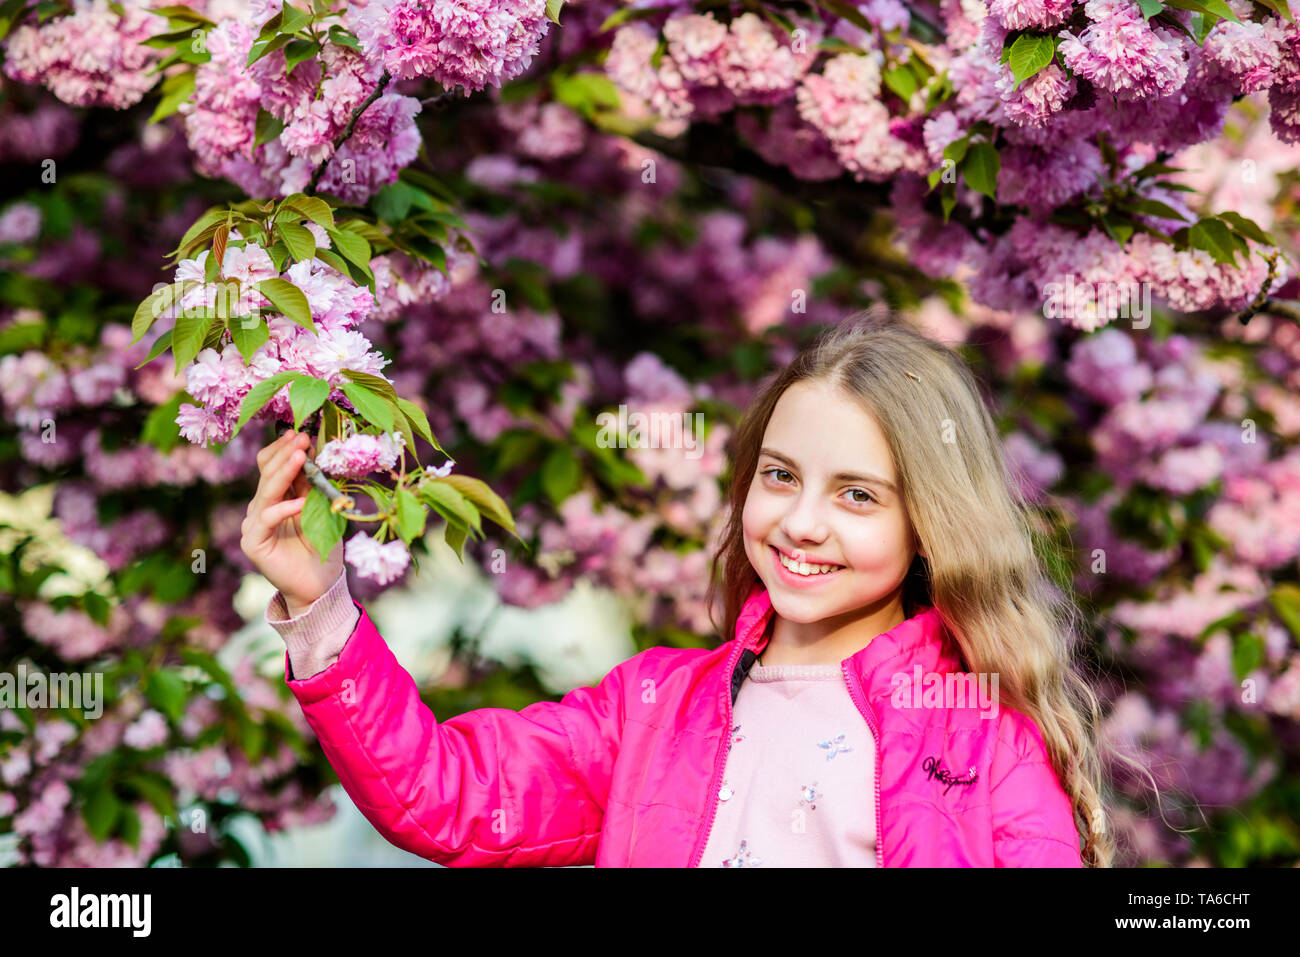 Spring style. summer. Childhood beauty. skincare spa. Natural cosmetics for skin. happy girl in cherry flower. Sakura tree blooming. small girl child in spring flower bloom. blossom smell, allergy. - Stock Image